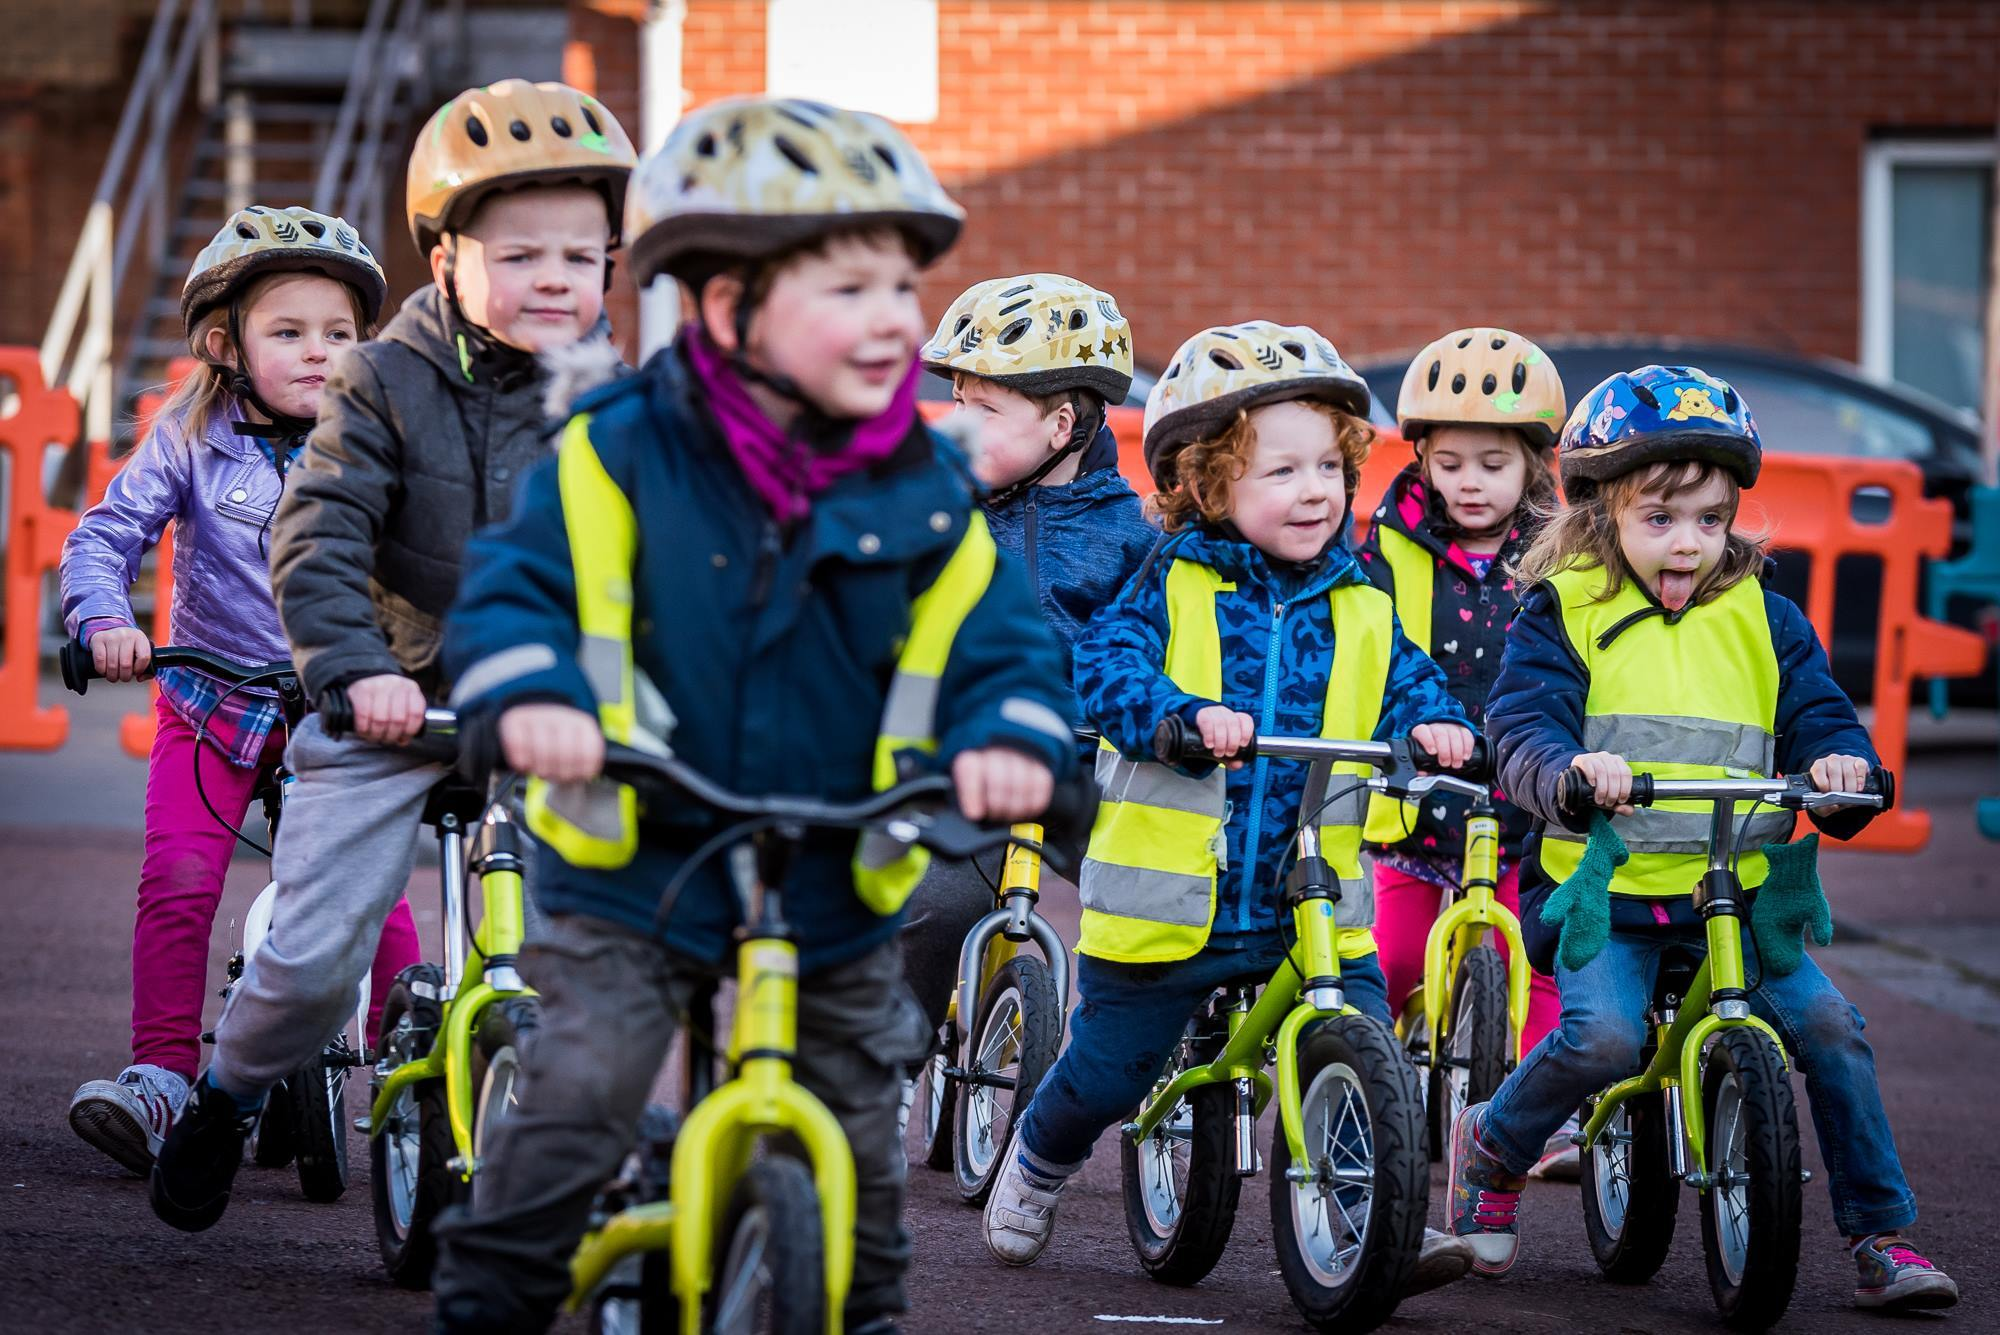 Record levels of child obesity were published in Scotland on Tuesday.